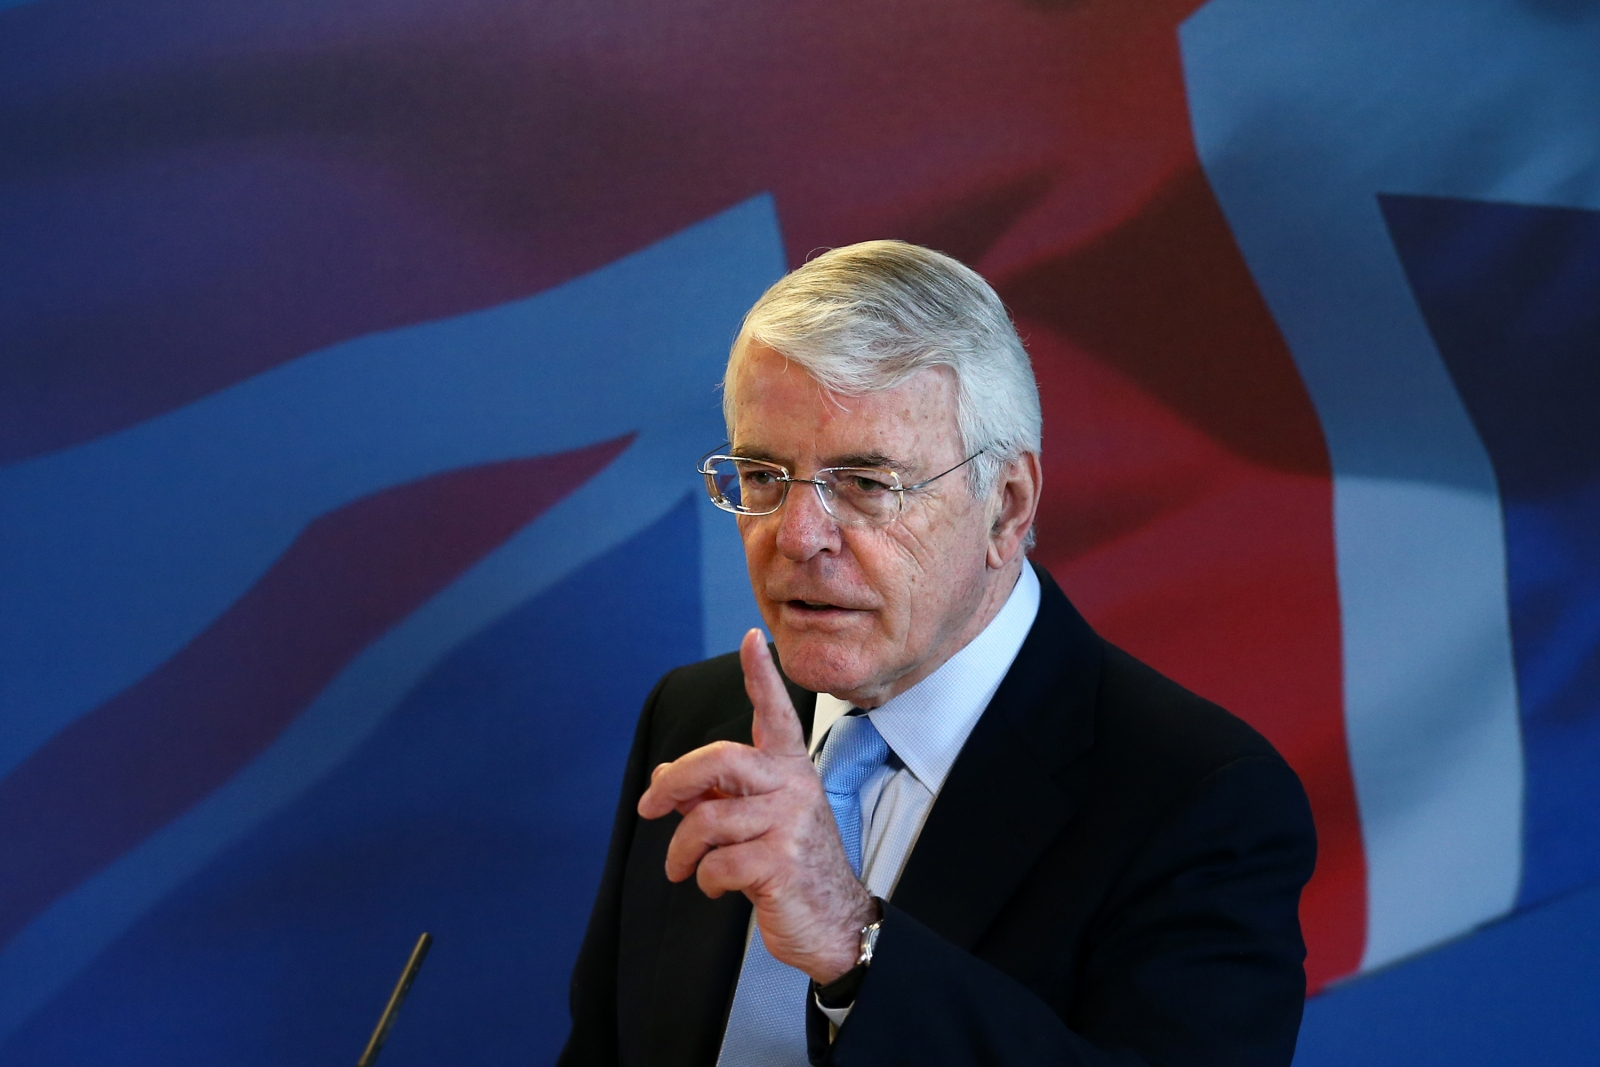 Brexit: Sir John Major says 'perfectly credible' case for second referendum